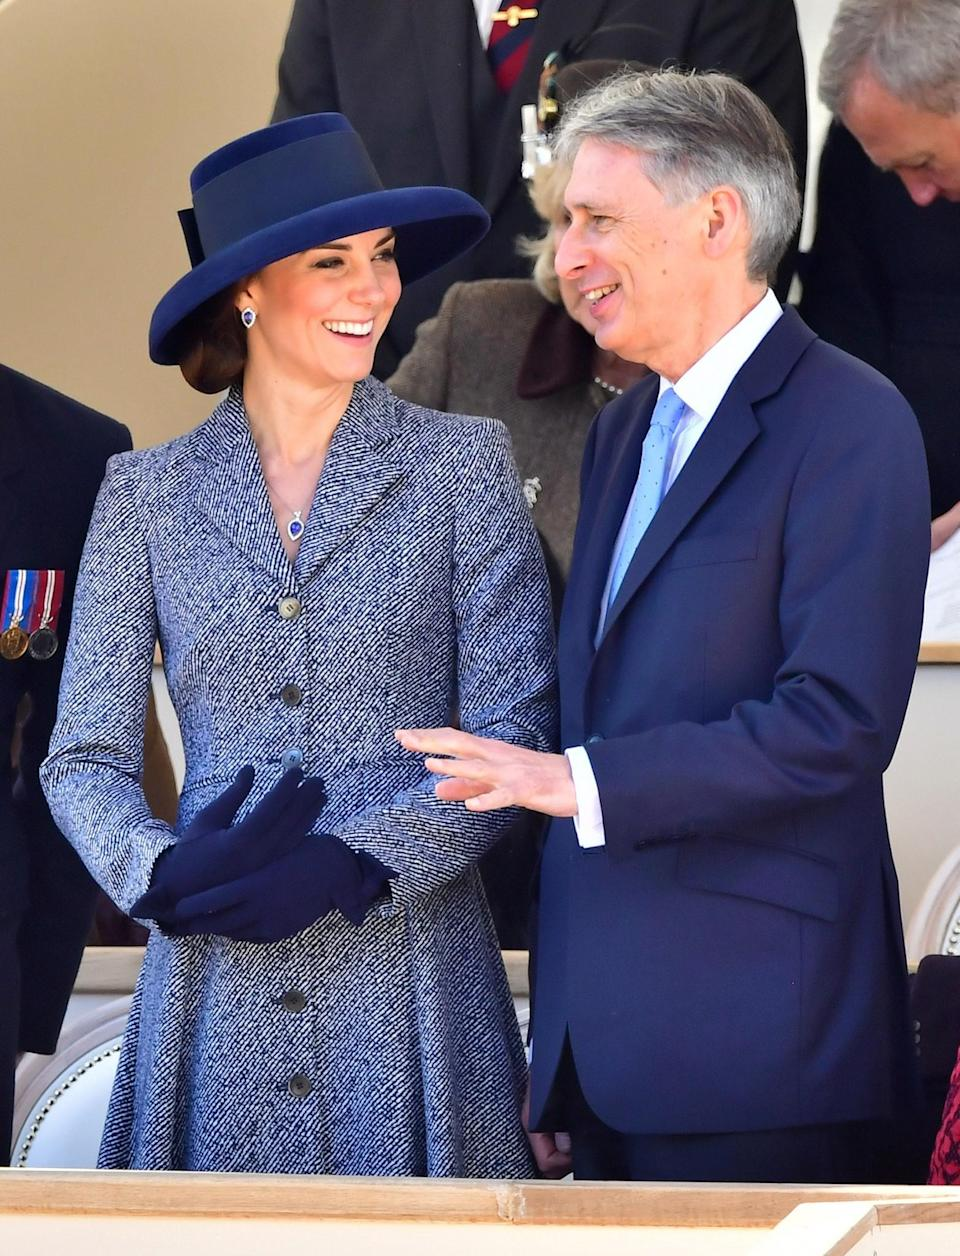 <p>The Duchess re-wore one of her favourite coat dresses for the unveiling of an Iraq and Afghanistan memorial in London. The light blue tweed design is by Michael Kors and was first worn by Kate back in 2014. On this occasion, she paired it with a navy wide-brimmed hat and matching wool gloves.<i>[Photo: PA]</i> </p>